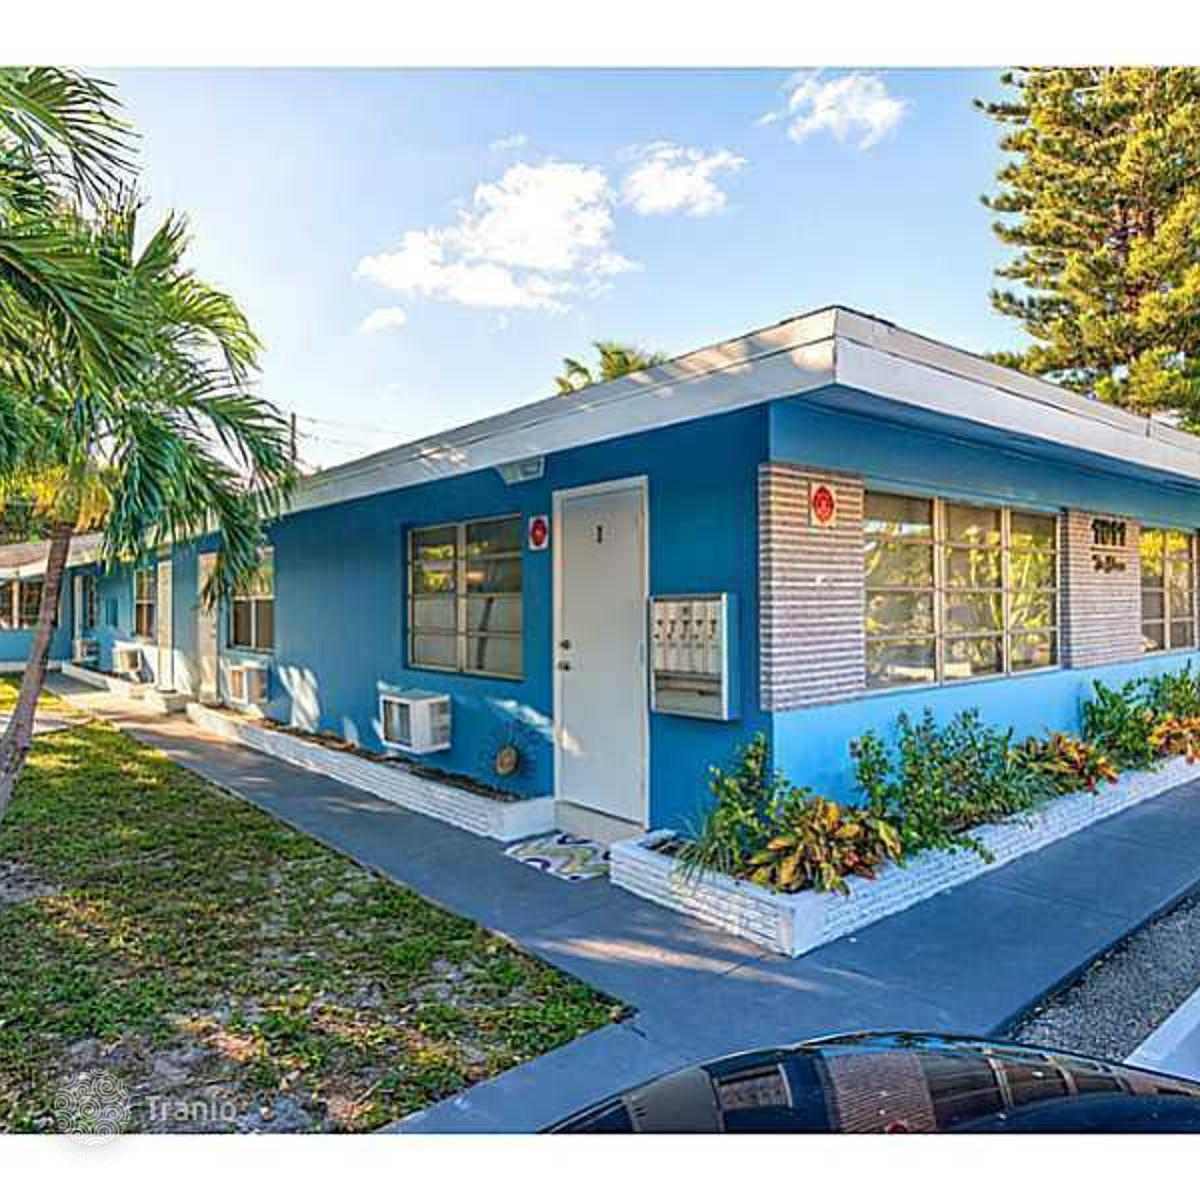 Listing #1336197 In Fort Lauderdale, Florida, USA